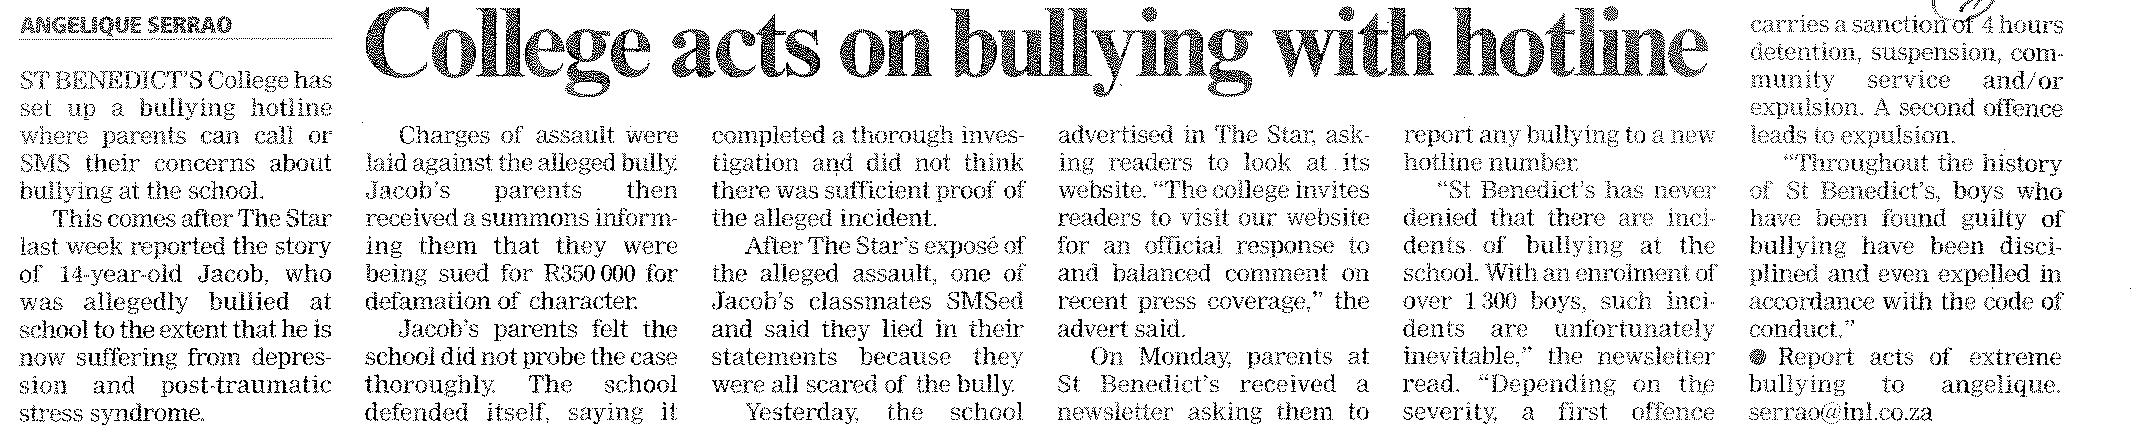 the star and city press commit themselves to rooting out bullying and prompting action by government and the school involved city press also stands out for taking a preventative approach to bullying